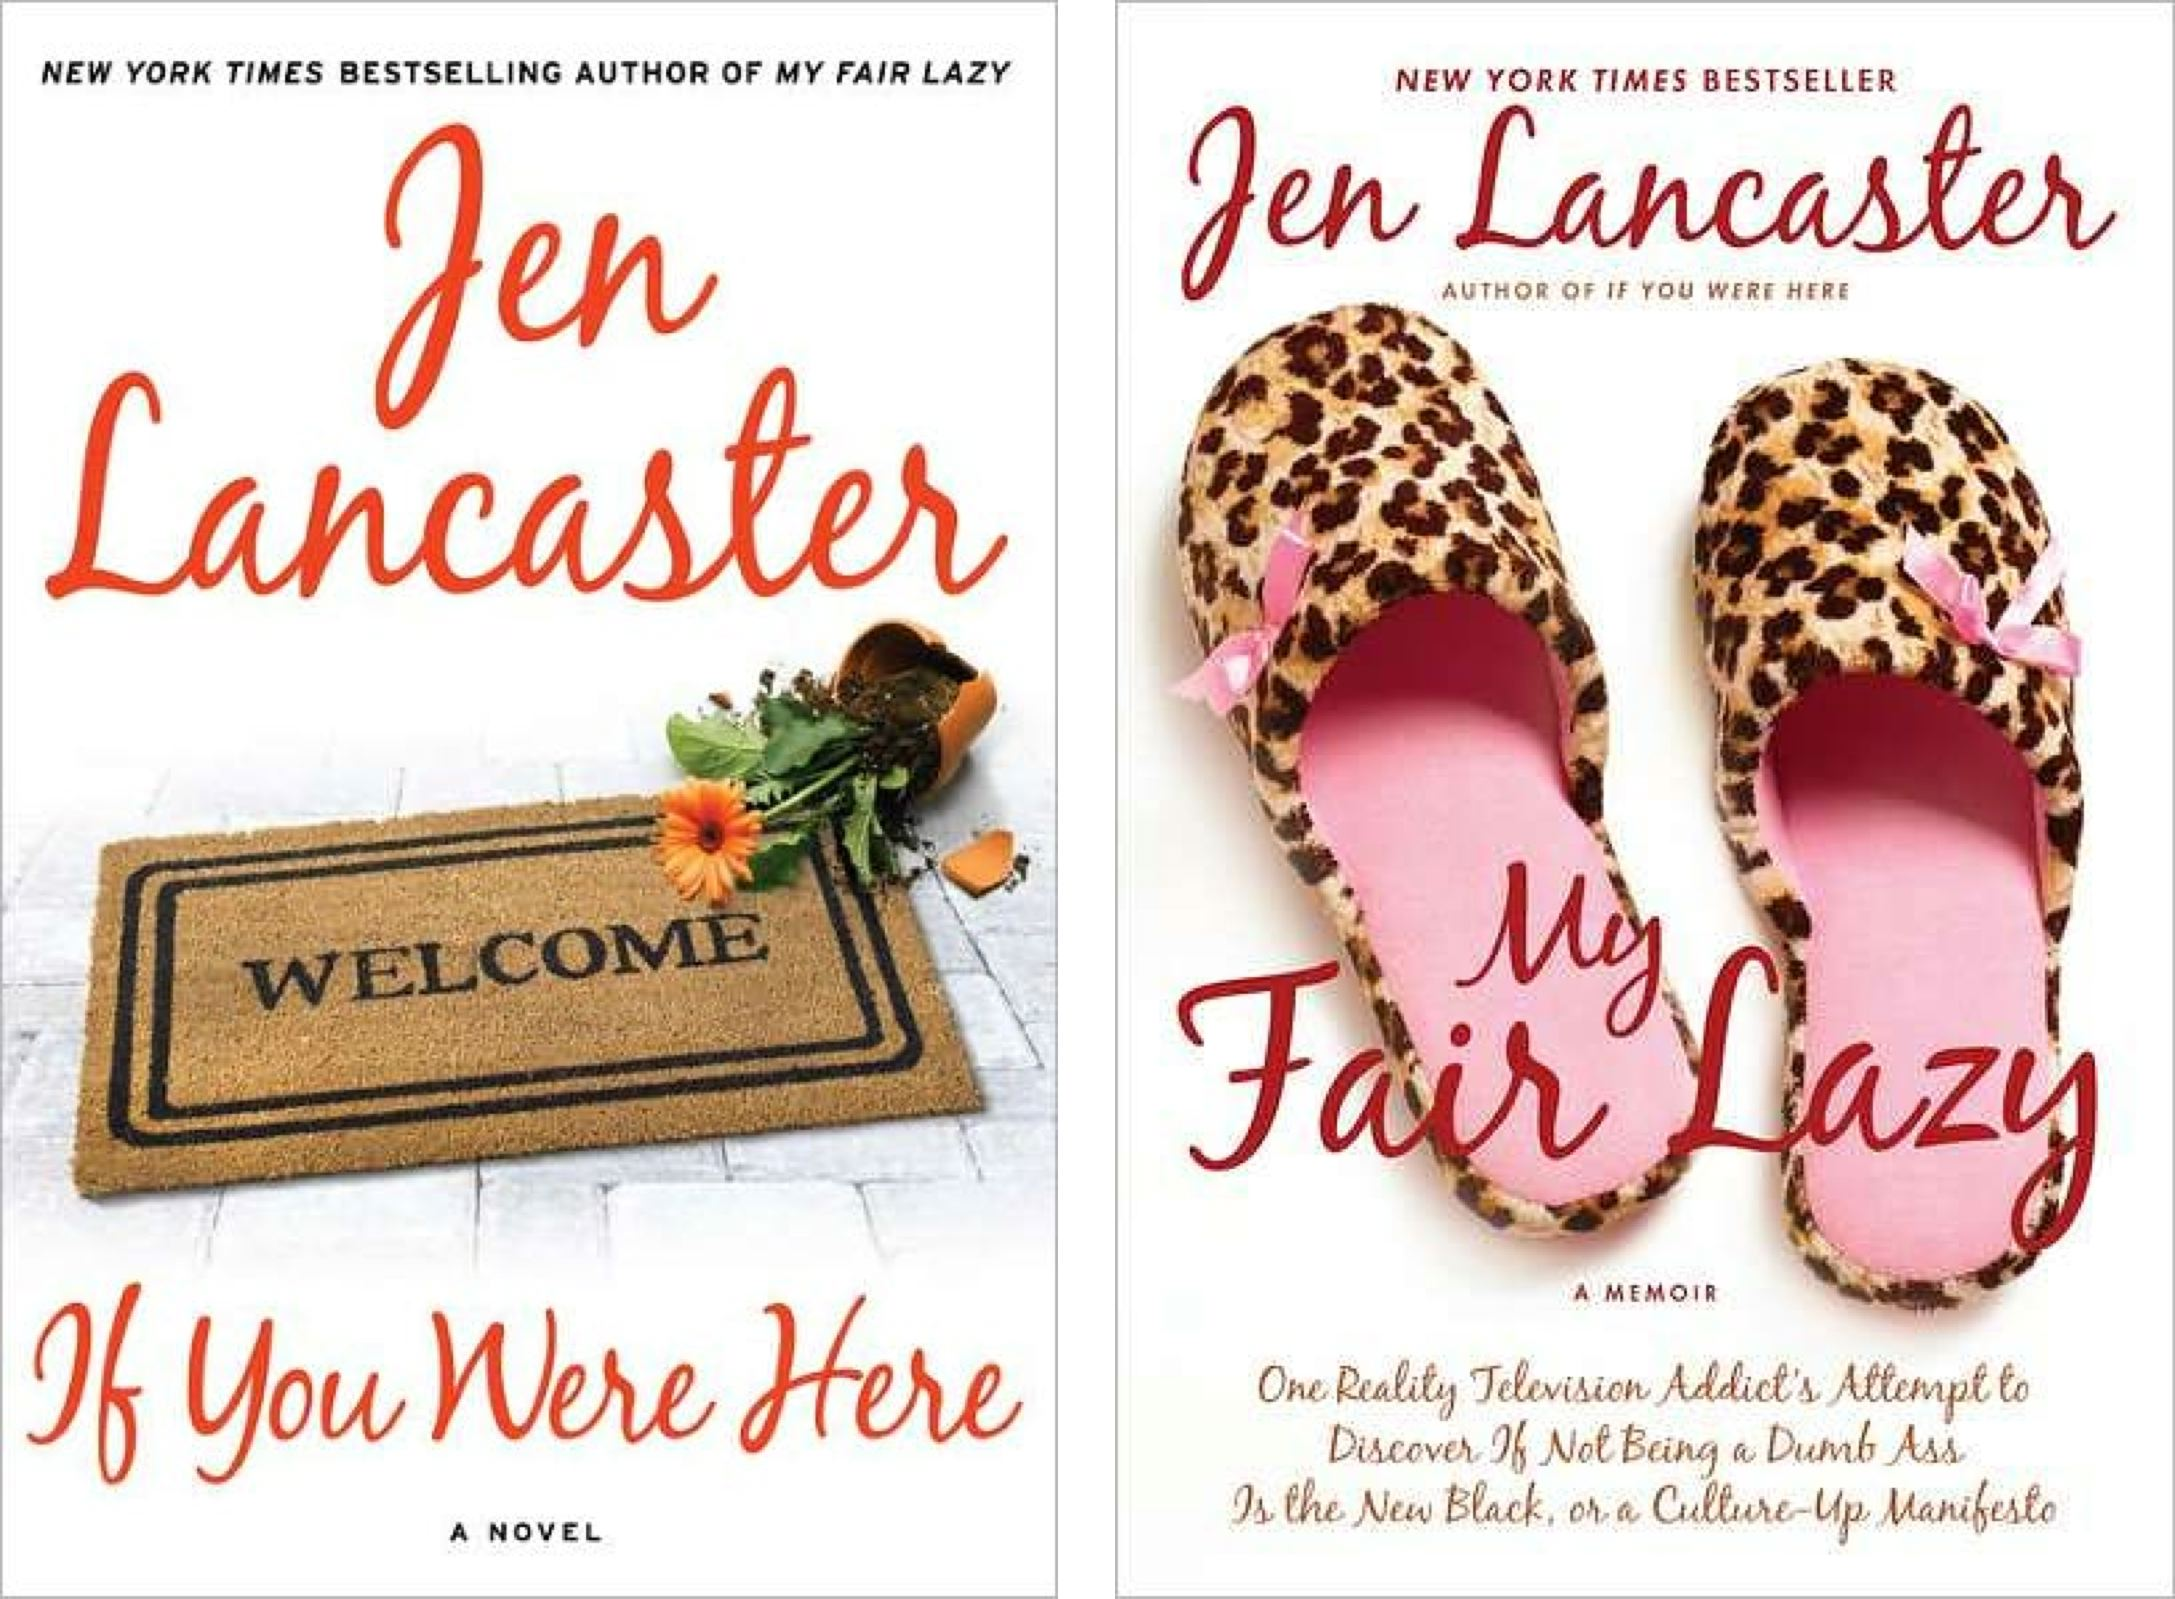 Lancaster covers